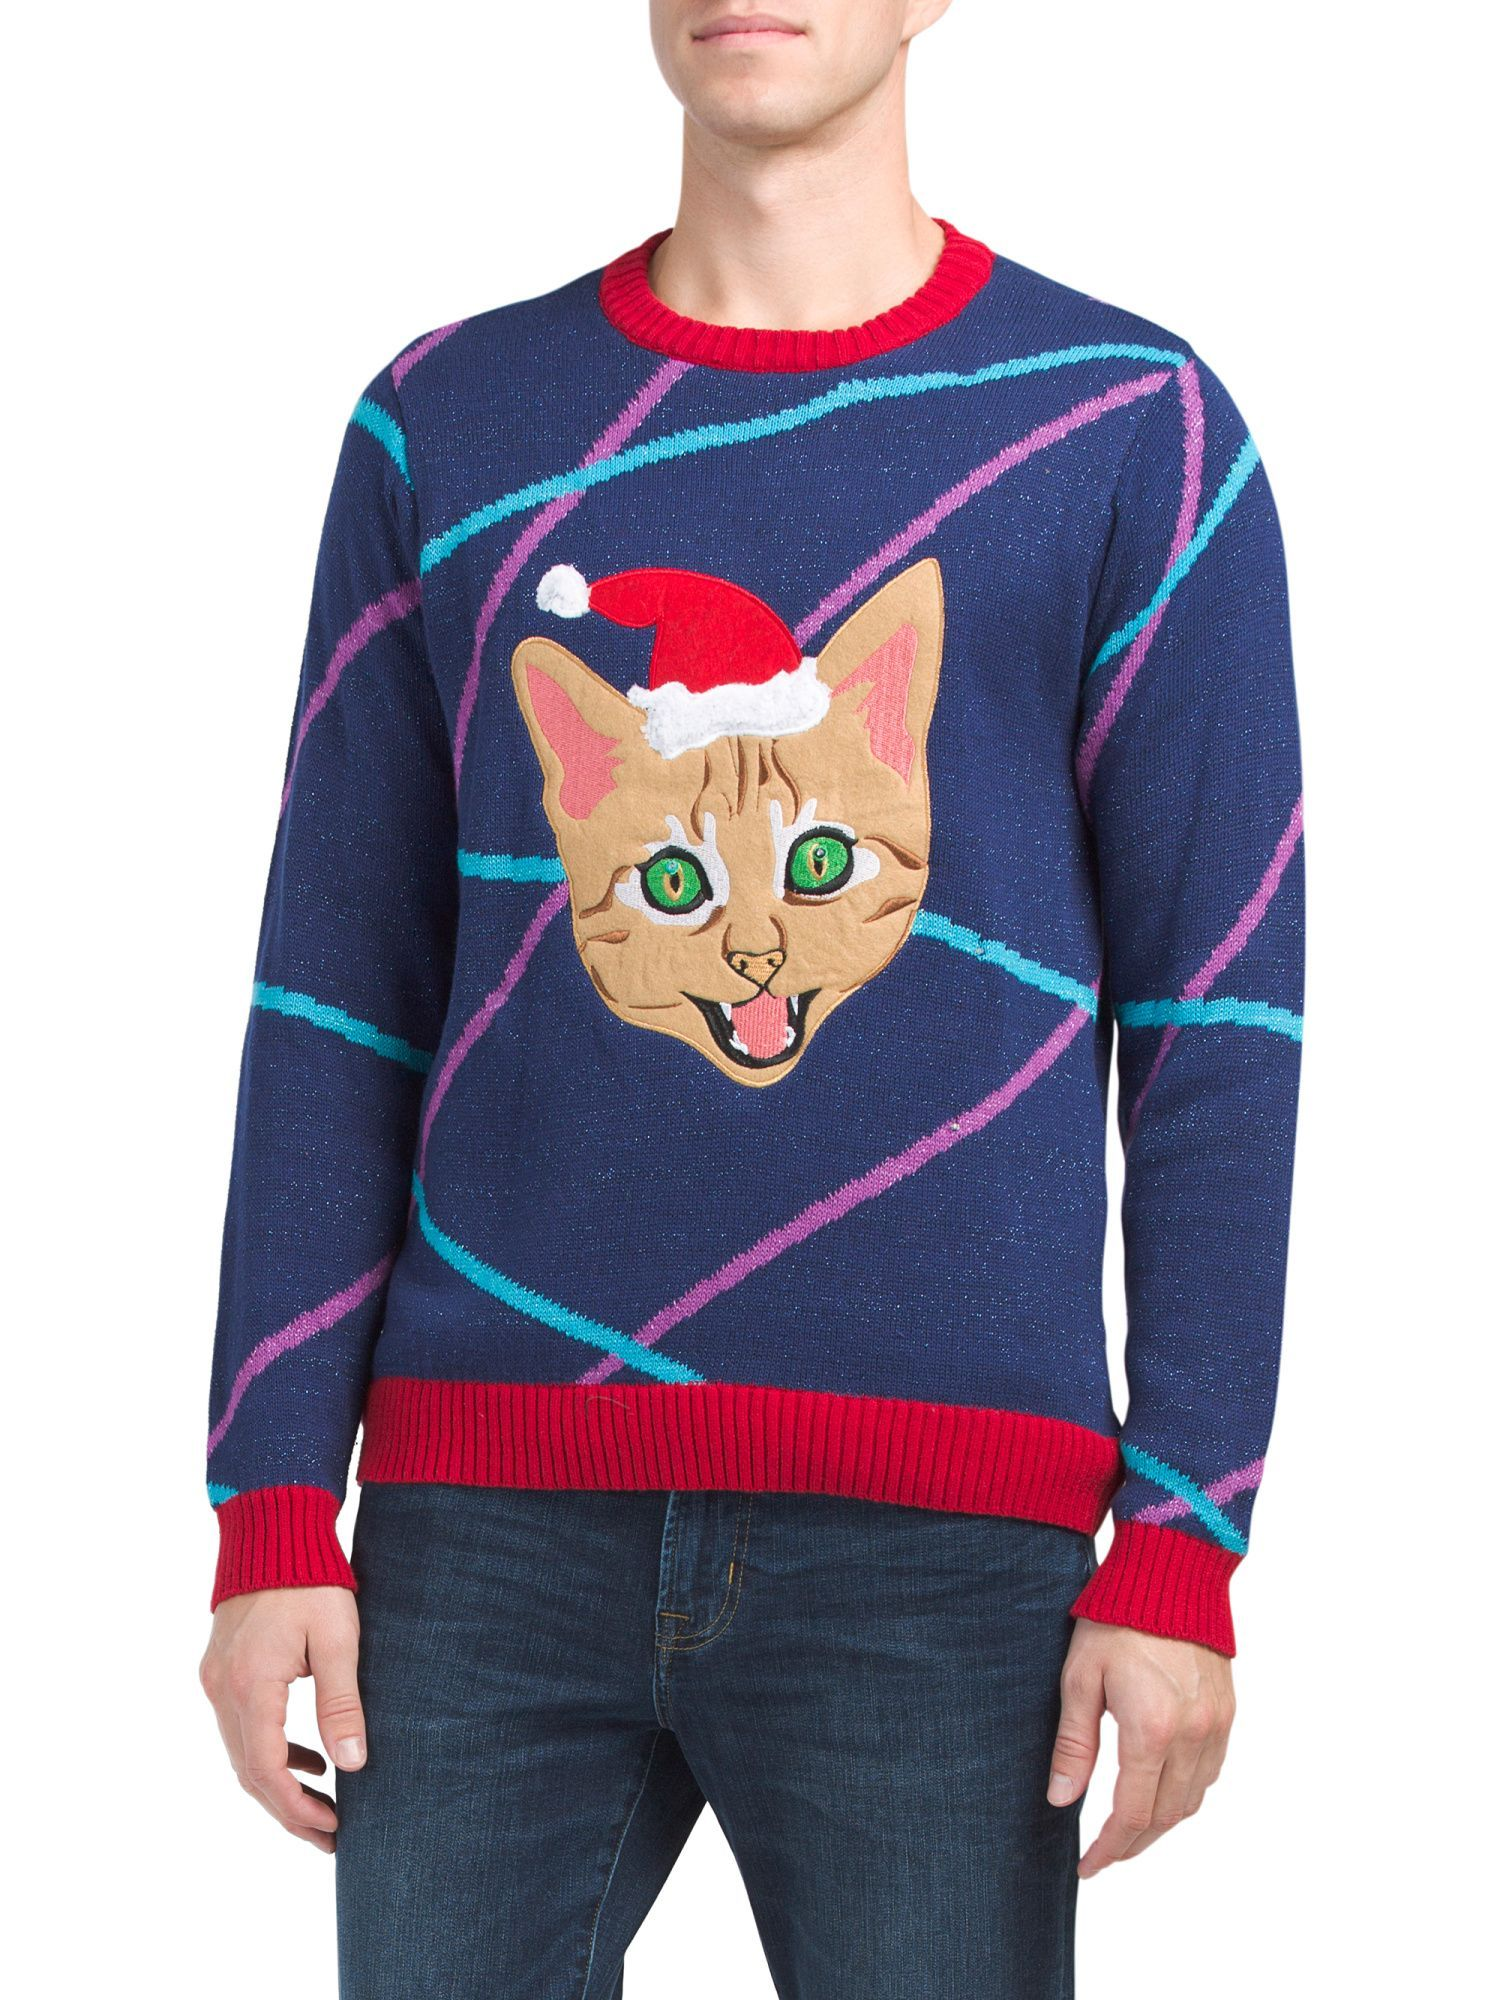 6e73c5d9927d1 Laser Eyes Kitty Light Up Christmas Sweater | Products | Christmas ...